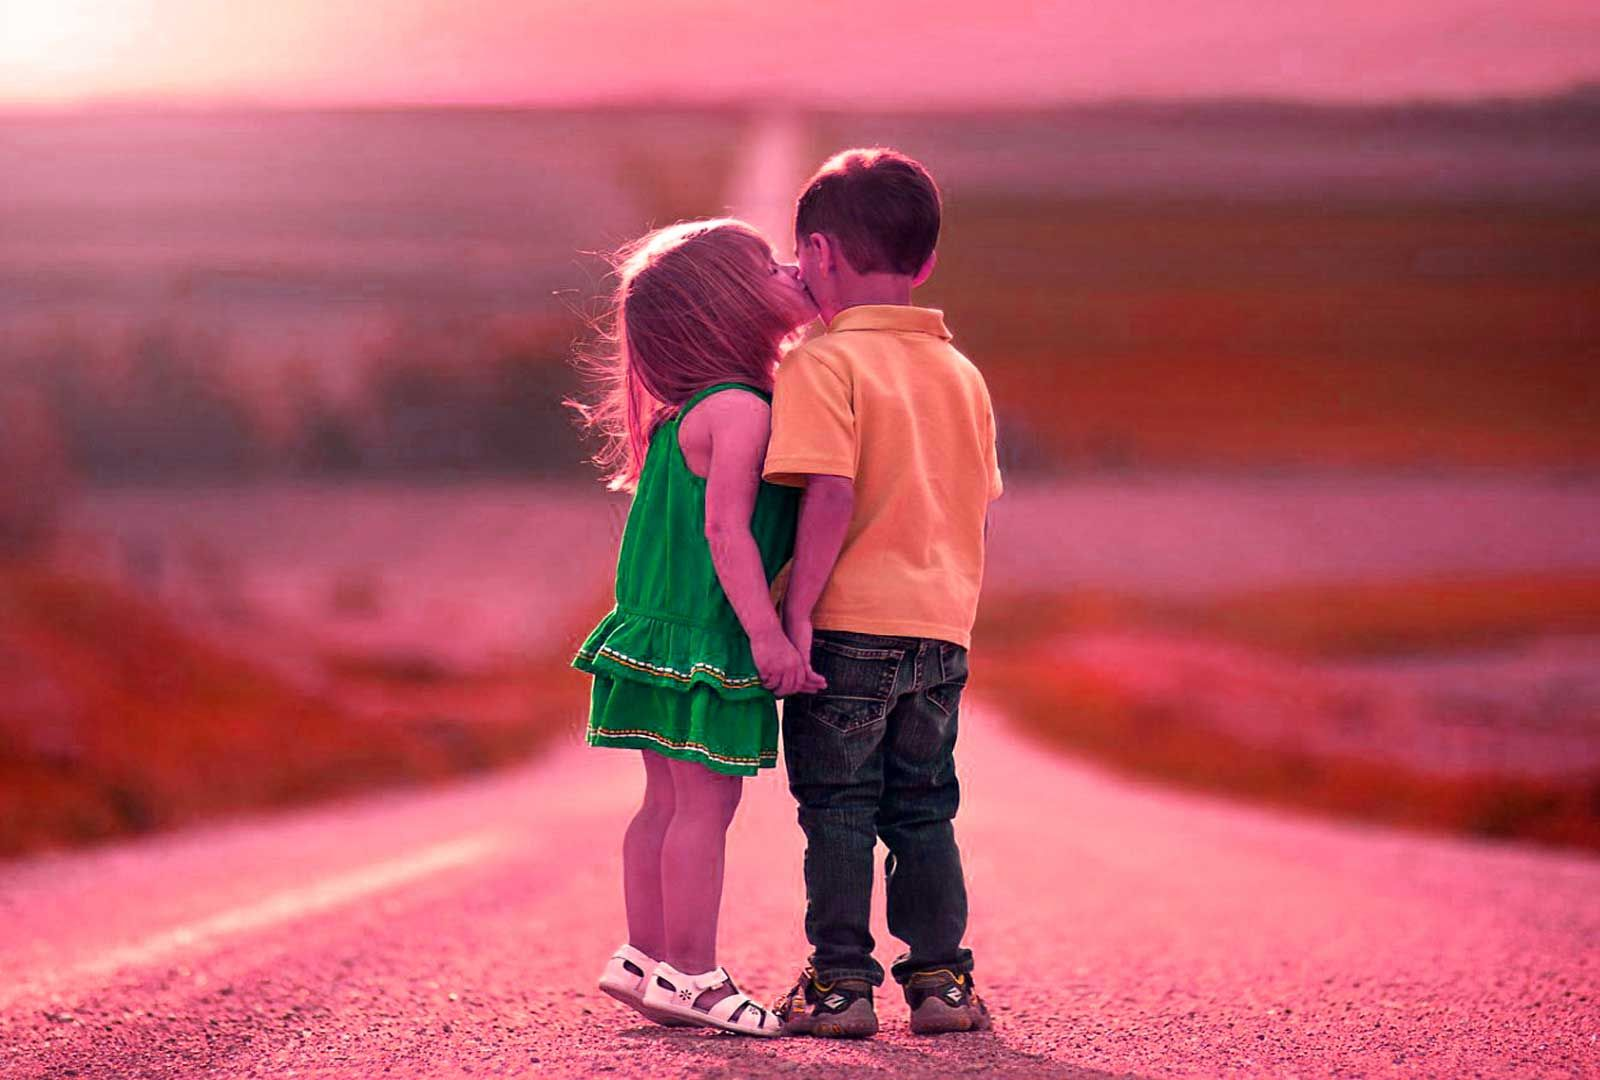 Image Result For Love Image Hd Whatsapp Dp Images Best Whatsapp Dp Whatsapp Profile Picture